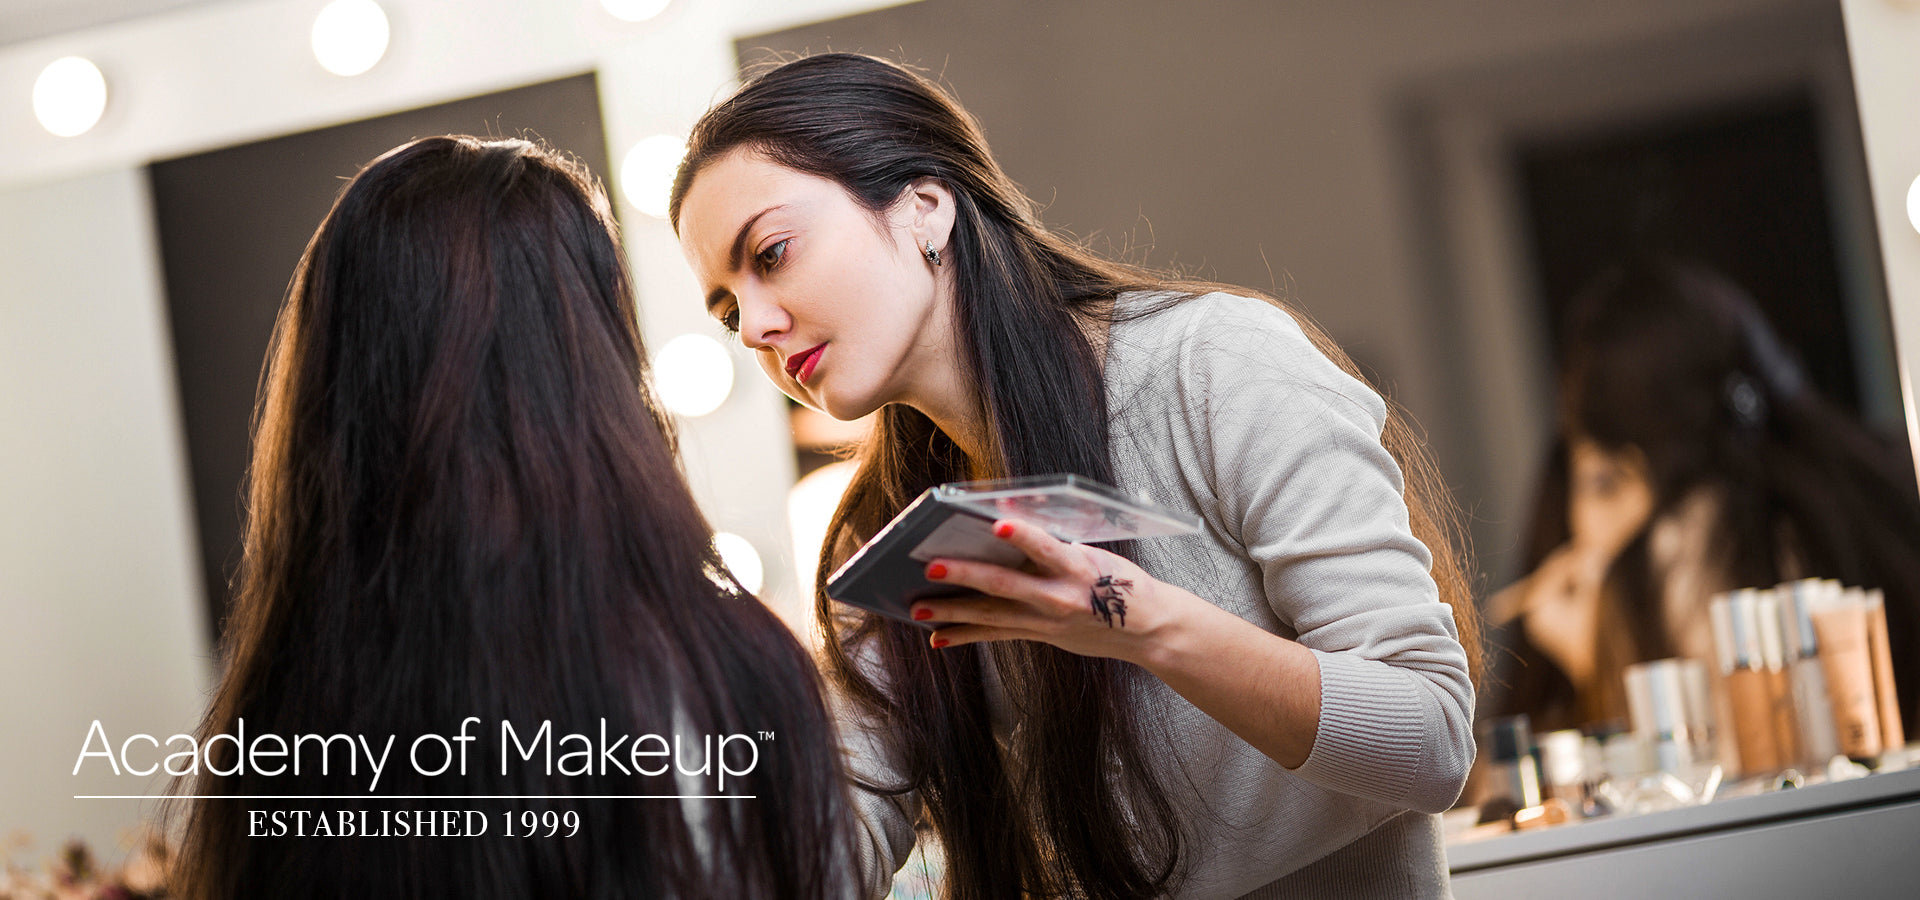 Kick-start your makeup career now!